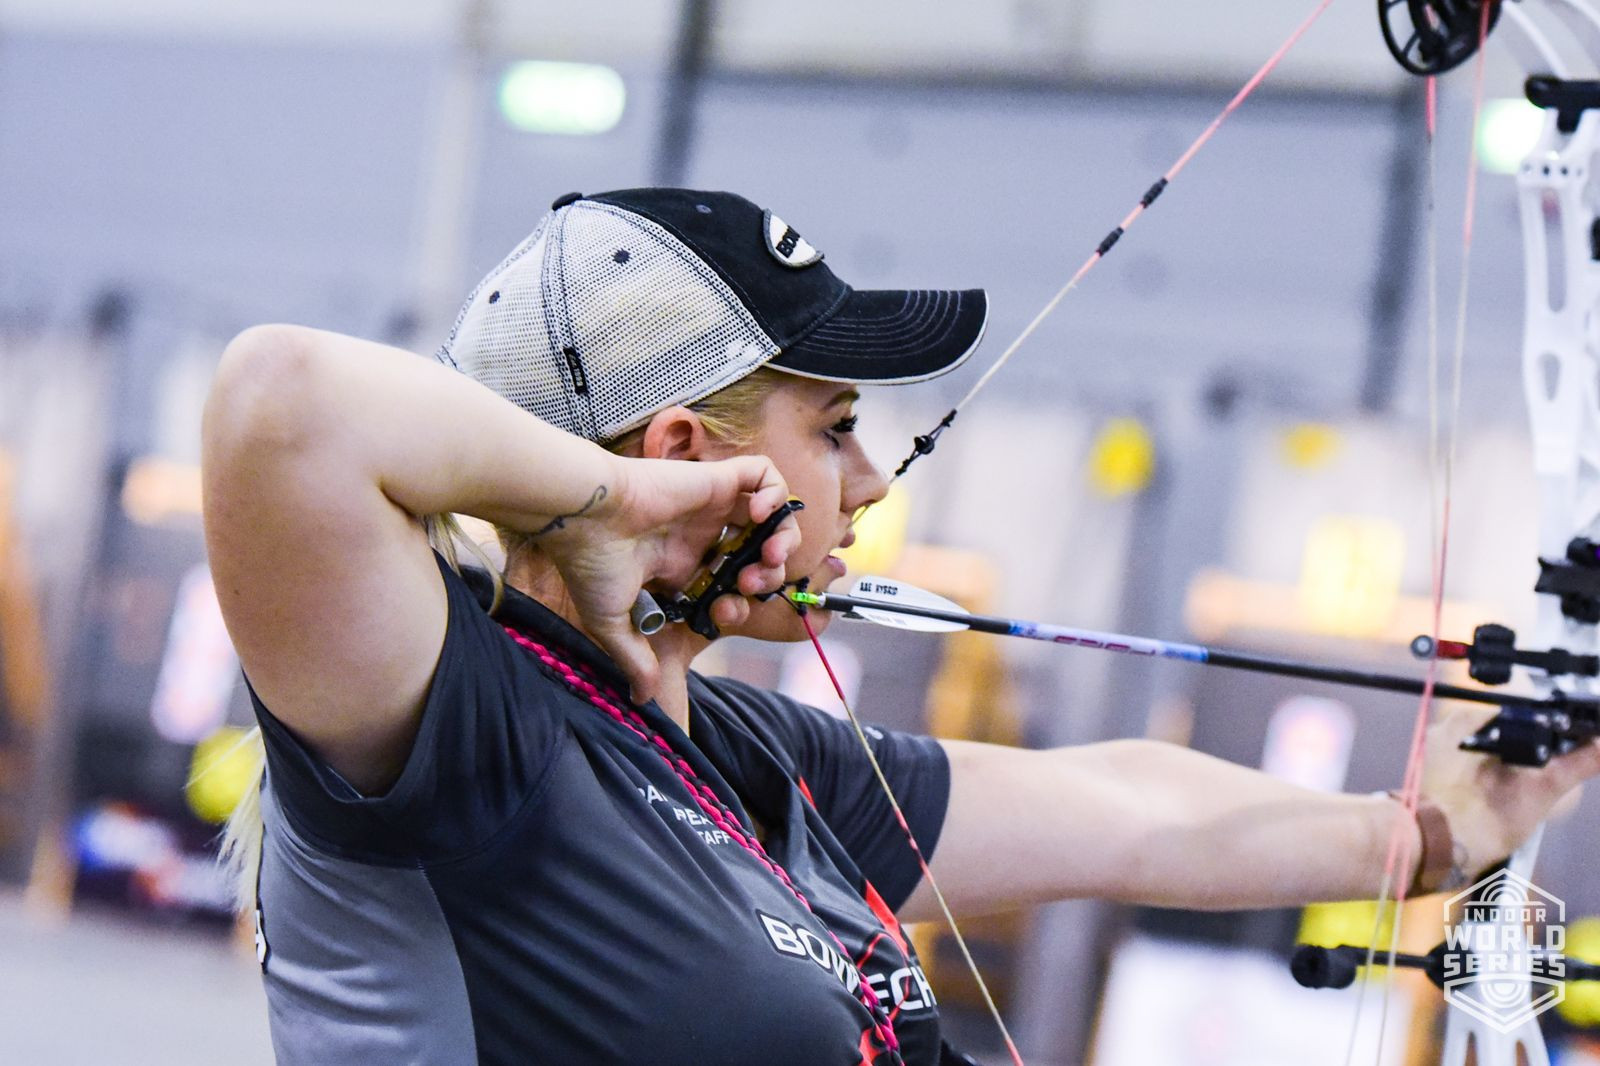 World Championship medallist Paige Pearce of the United States will be among the favourites in the women's compound event at the Sydney Indoor Archery Festival currently underway ©World Archery